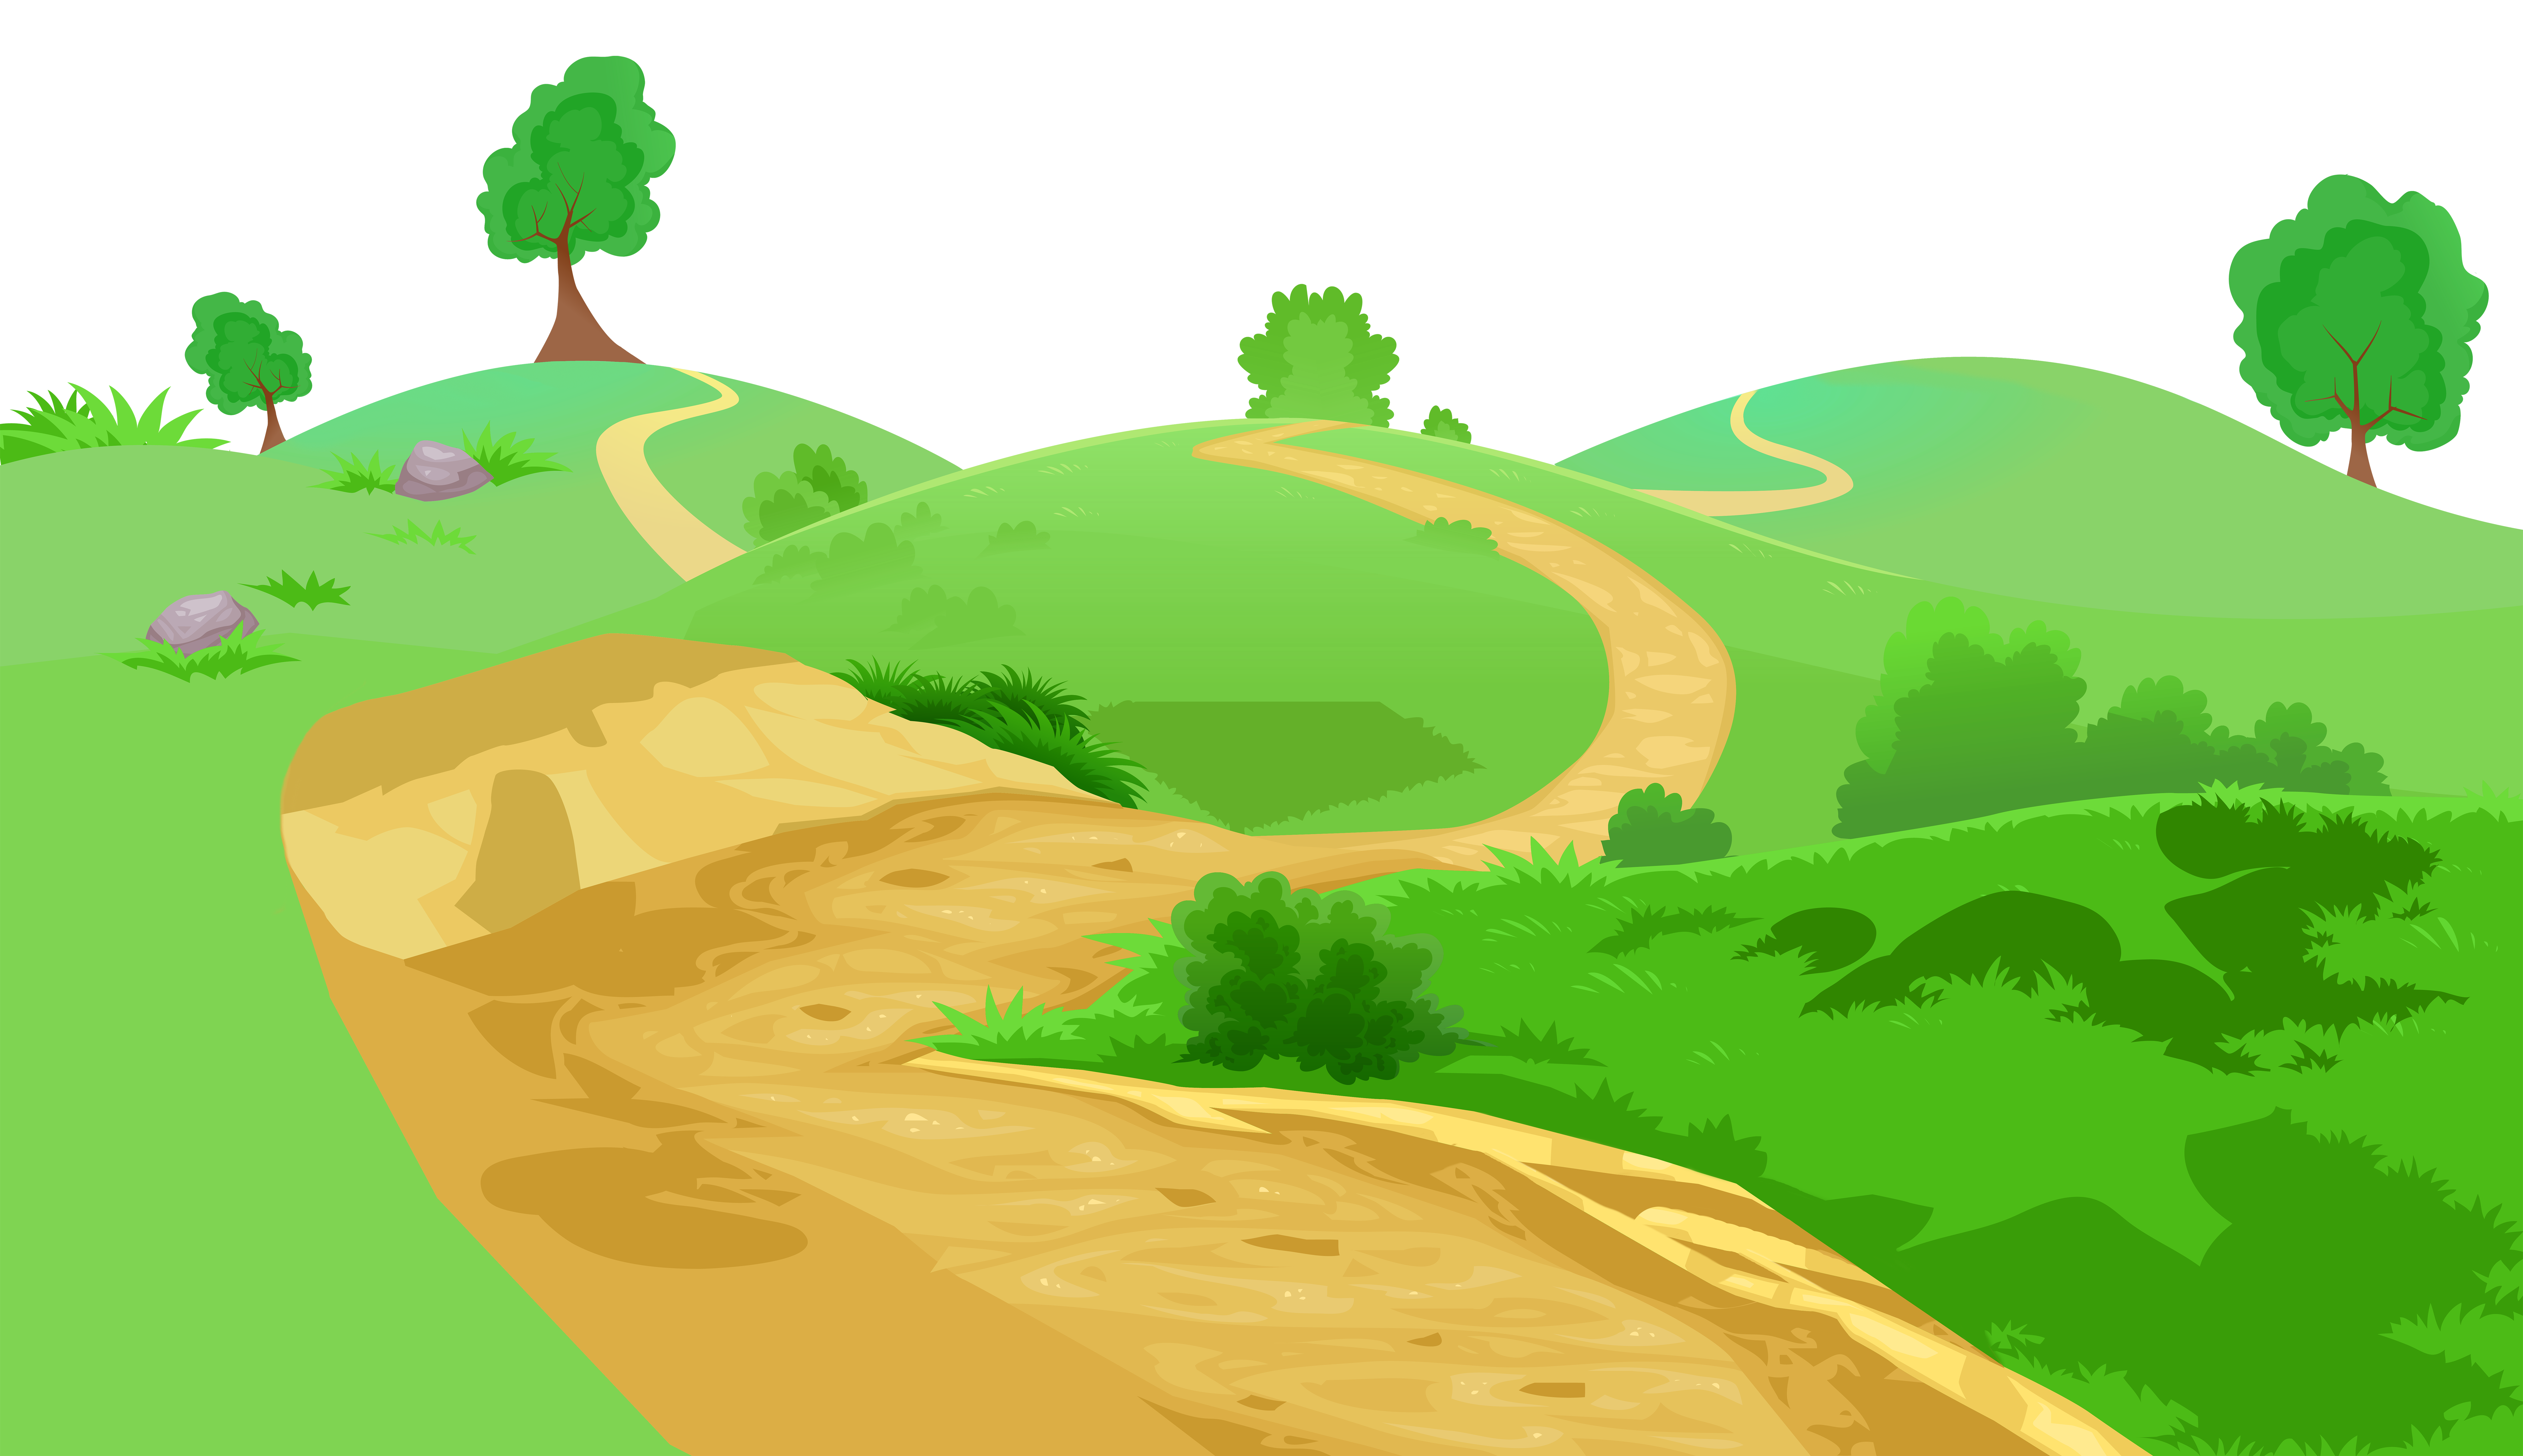 Hills clipart path, Hills path Transparent FREE for download.